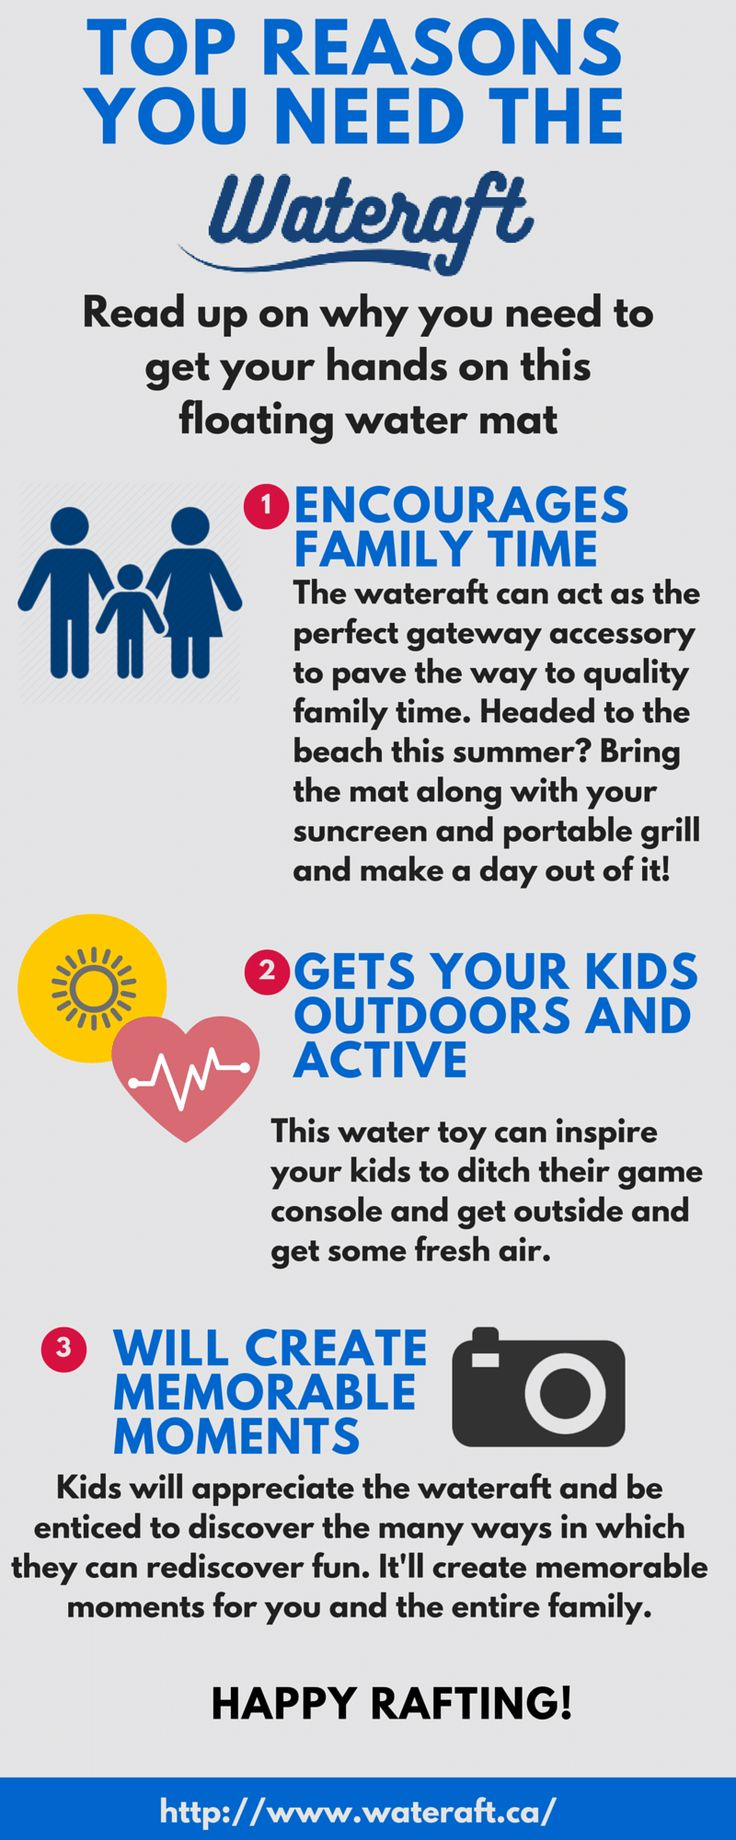 See how the #wateraft can create a summertime of laughter. Learn more here: http://www.wateraft.ca/   #HappyRafting